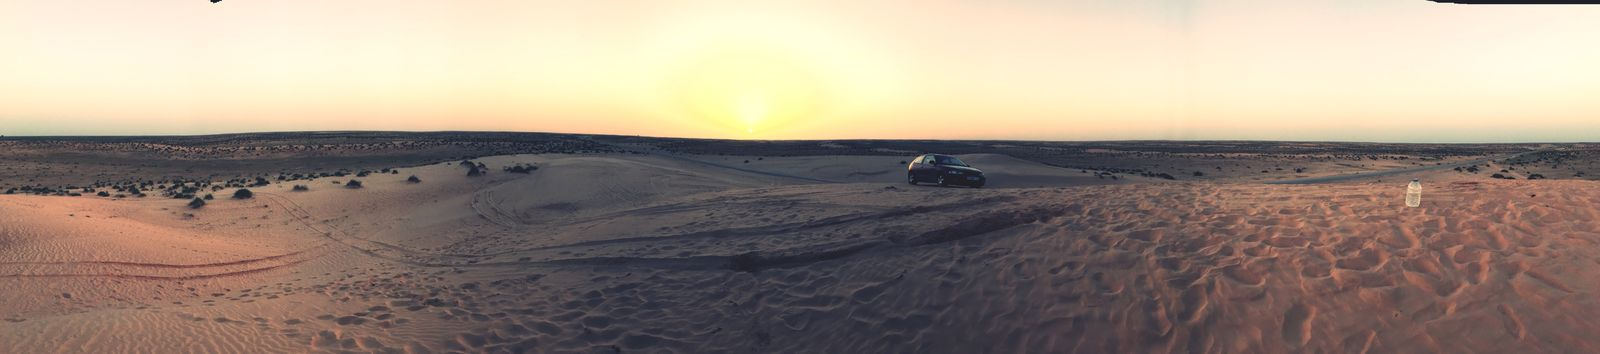 Sunset Sunset Sand Sand Dune Transportation Desert Arid Climate Nature Off-road Vehicle Land Vehicle Scenics Landscape Riding Beauty In Nature Outdoors Tire Track Mode Of Transport Sky